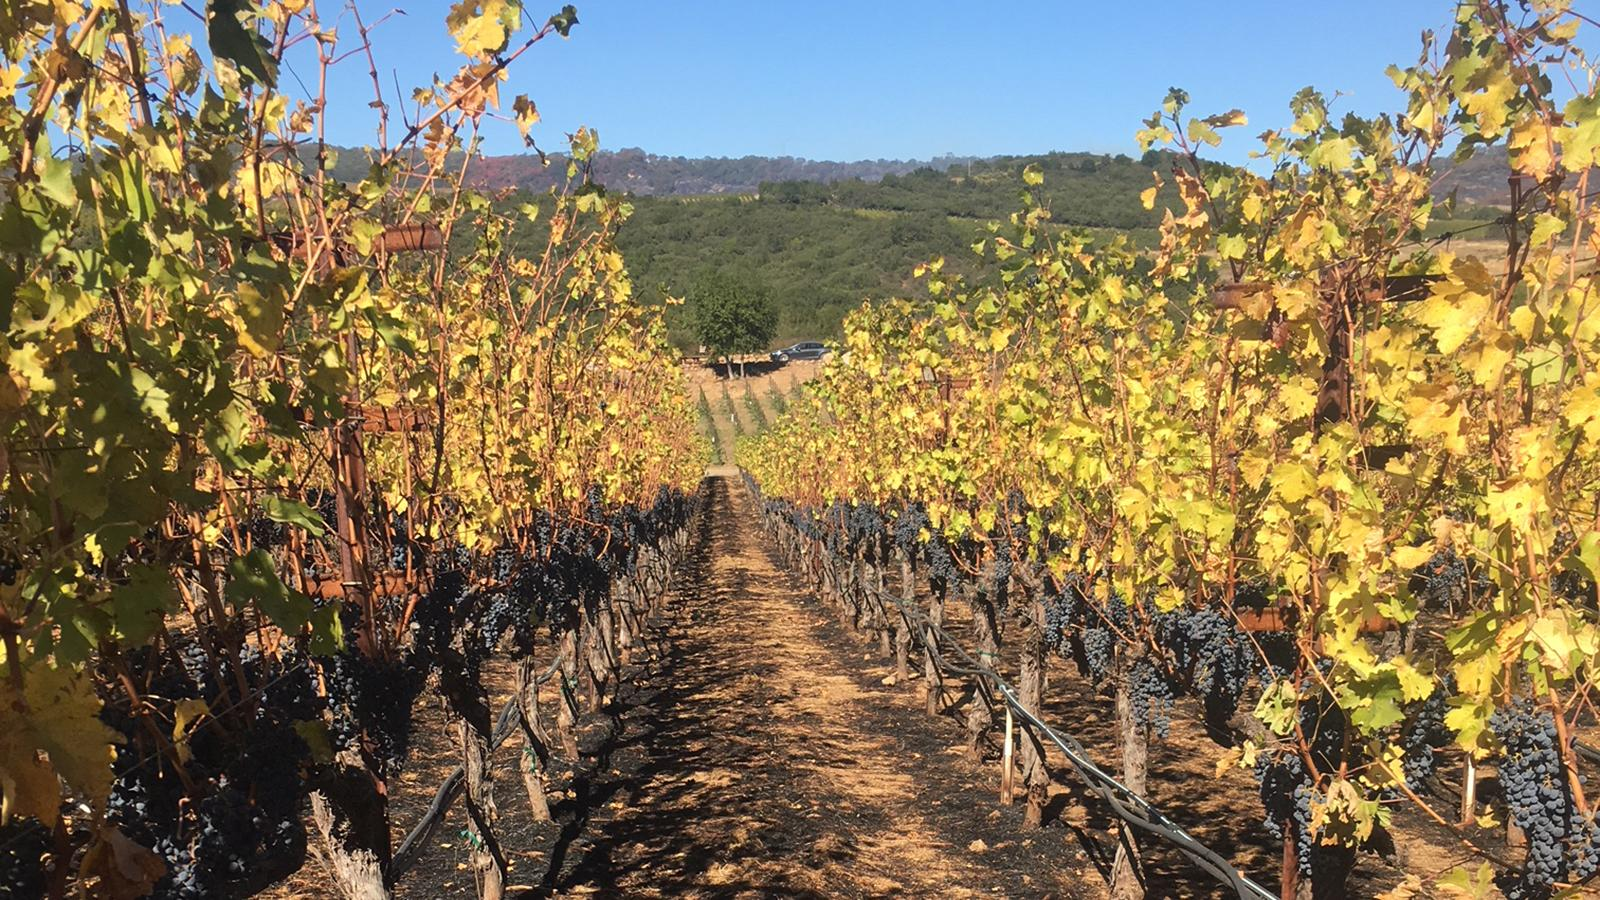 Oct. 20, 3:30 p.m. PST: Northern California Vintners Assess Wildfire Damage